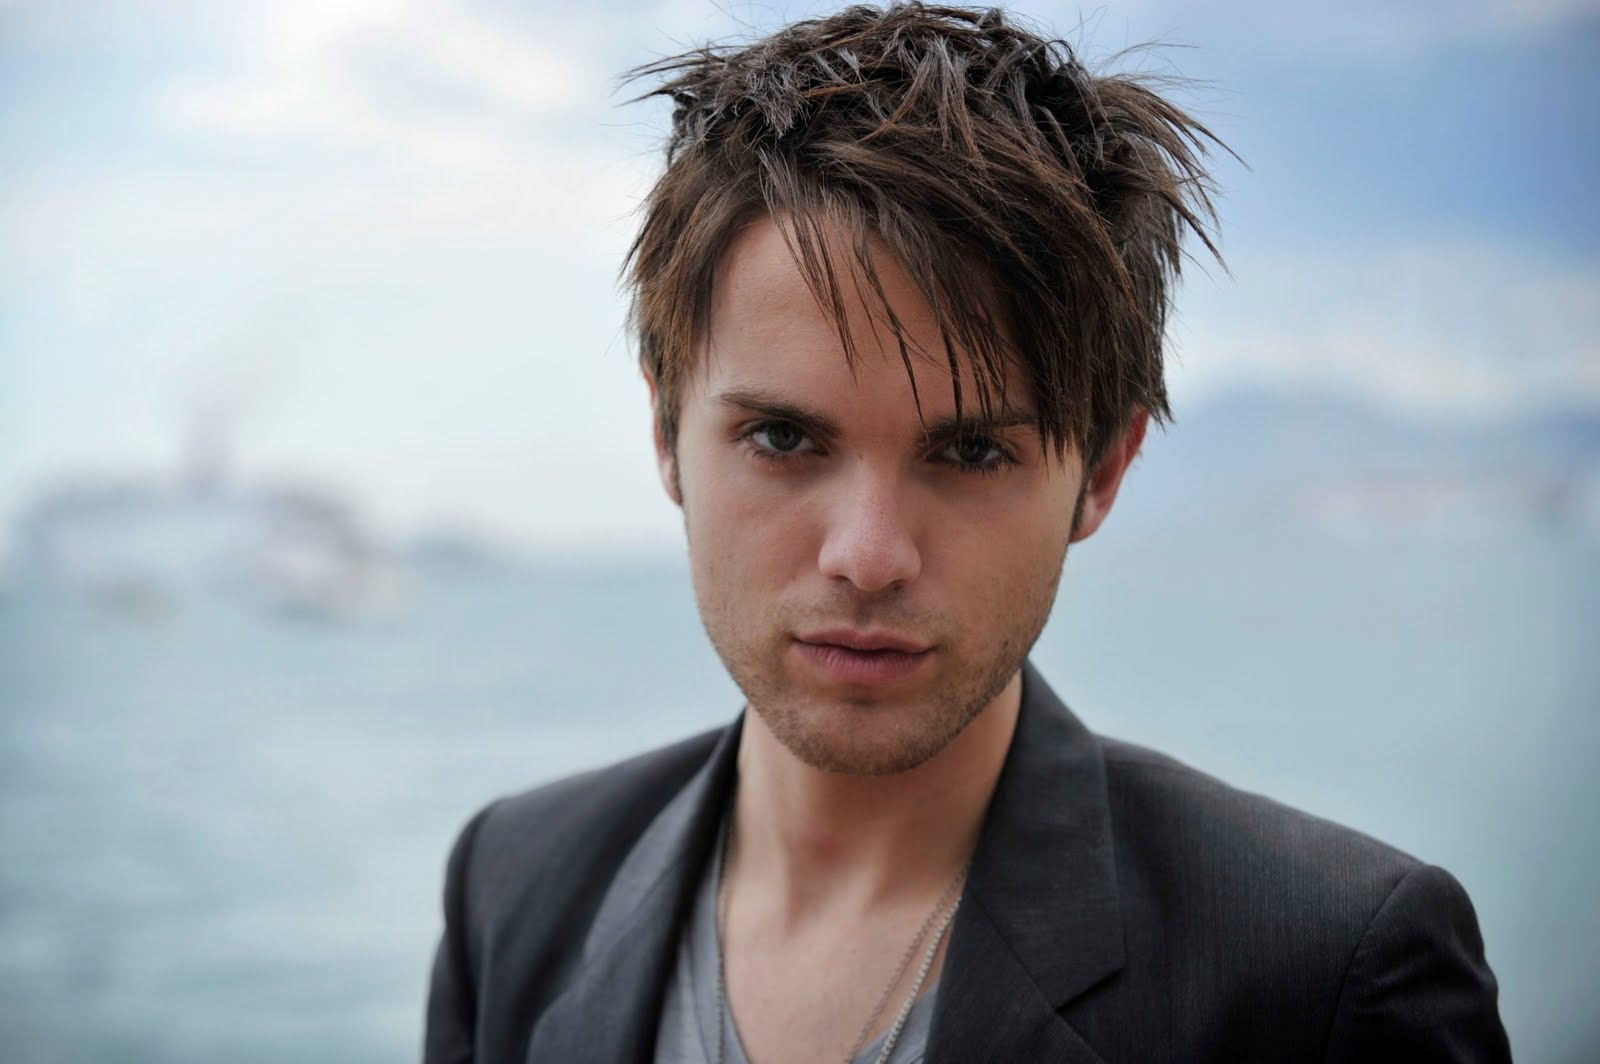 Thomas Dekker hd wallpaper Wallpaper